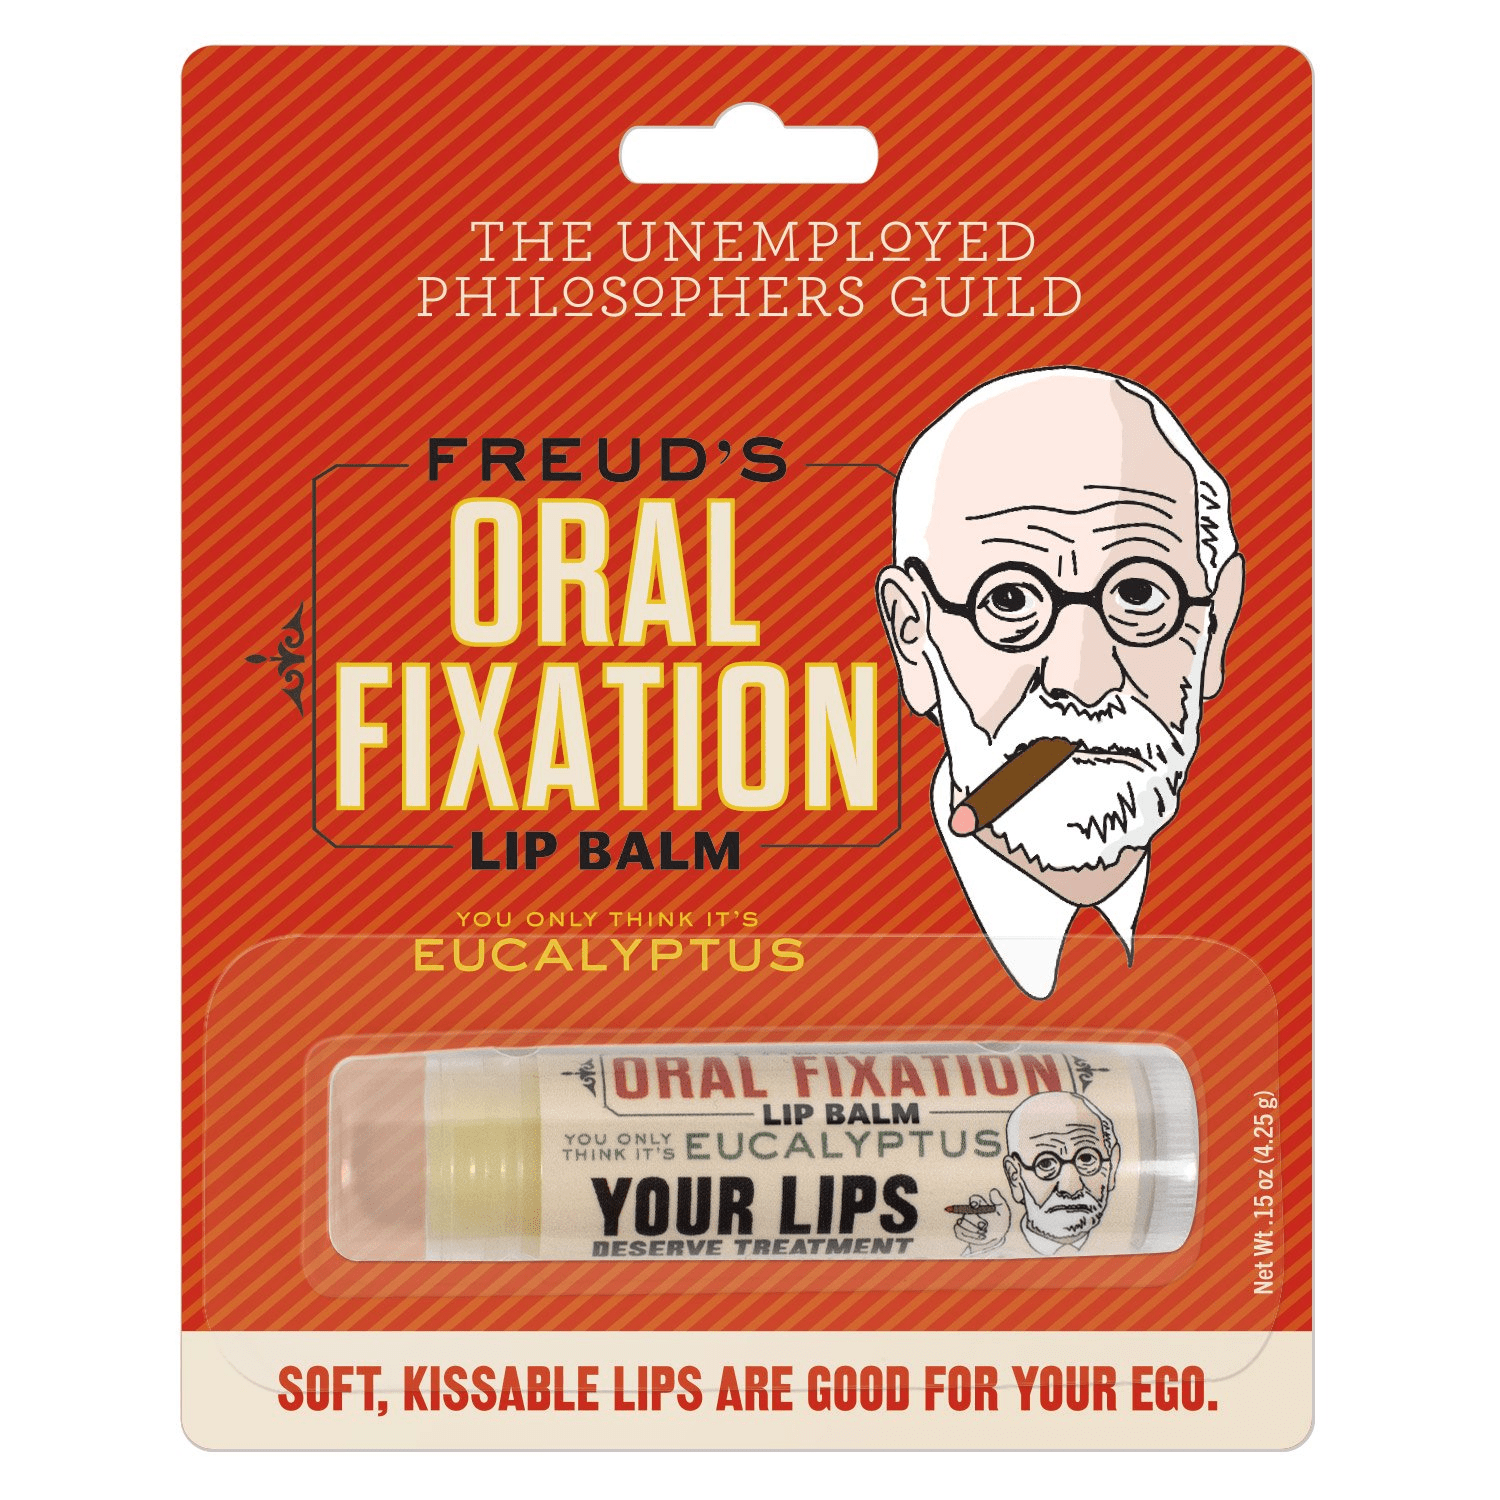 Freud's Oral Fixation Lip Balm Unemployed Philosophers Guild Clothing/Accessories